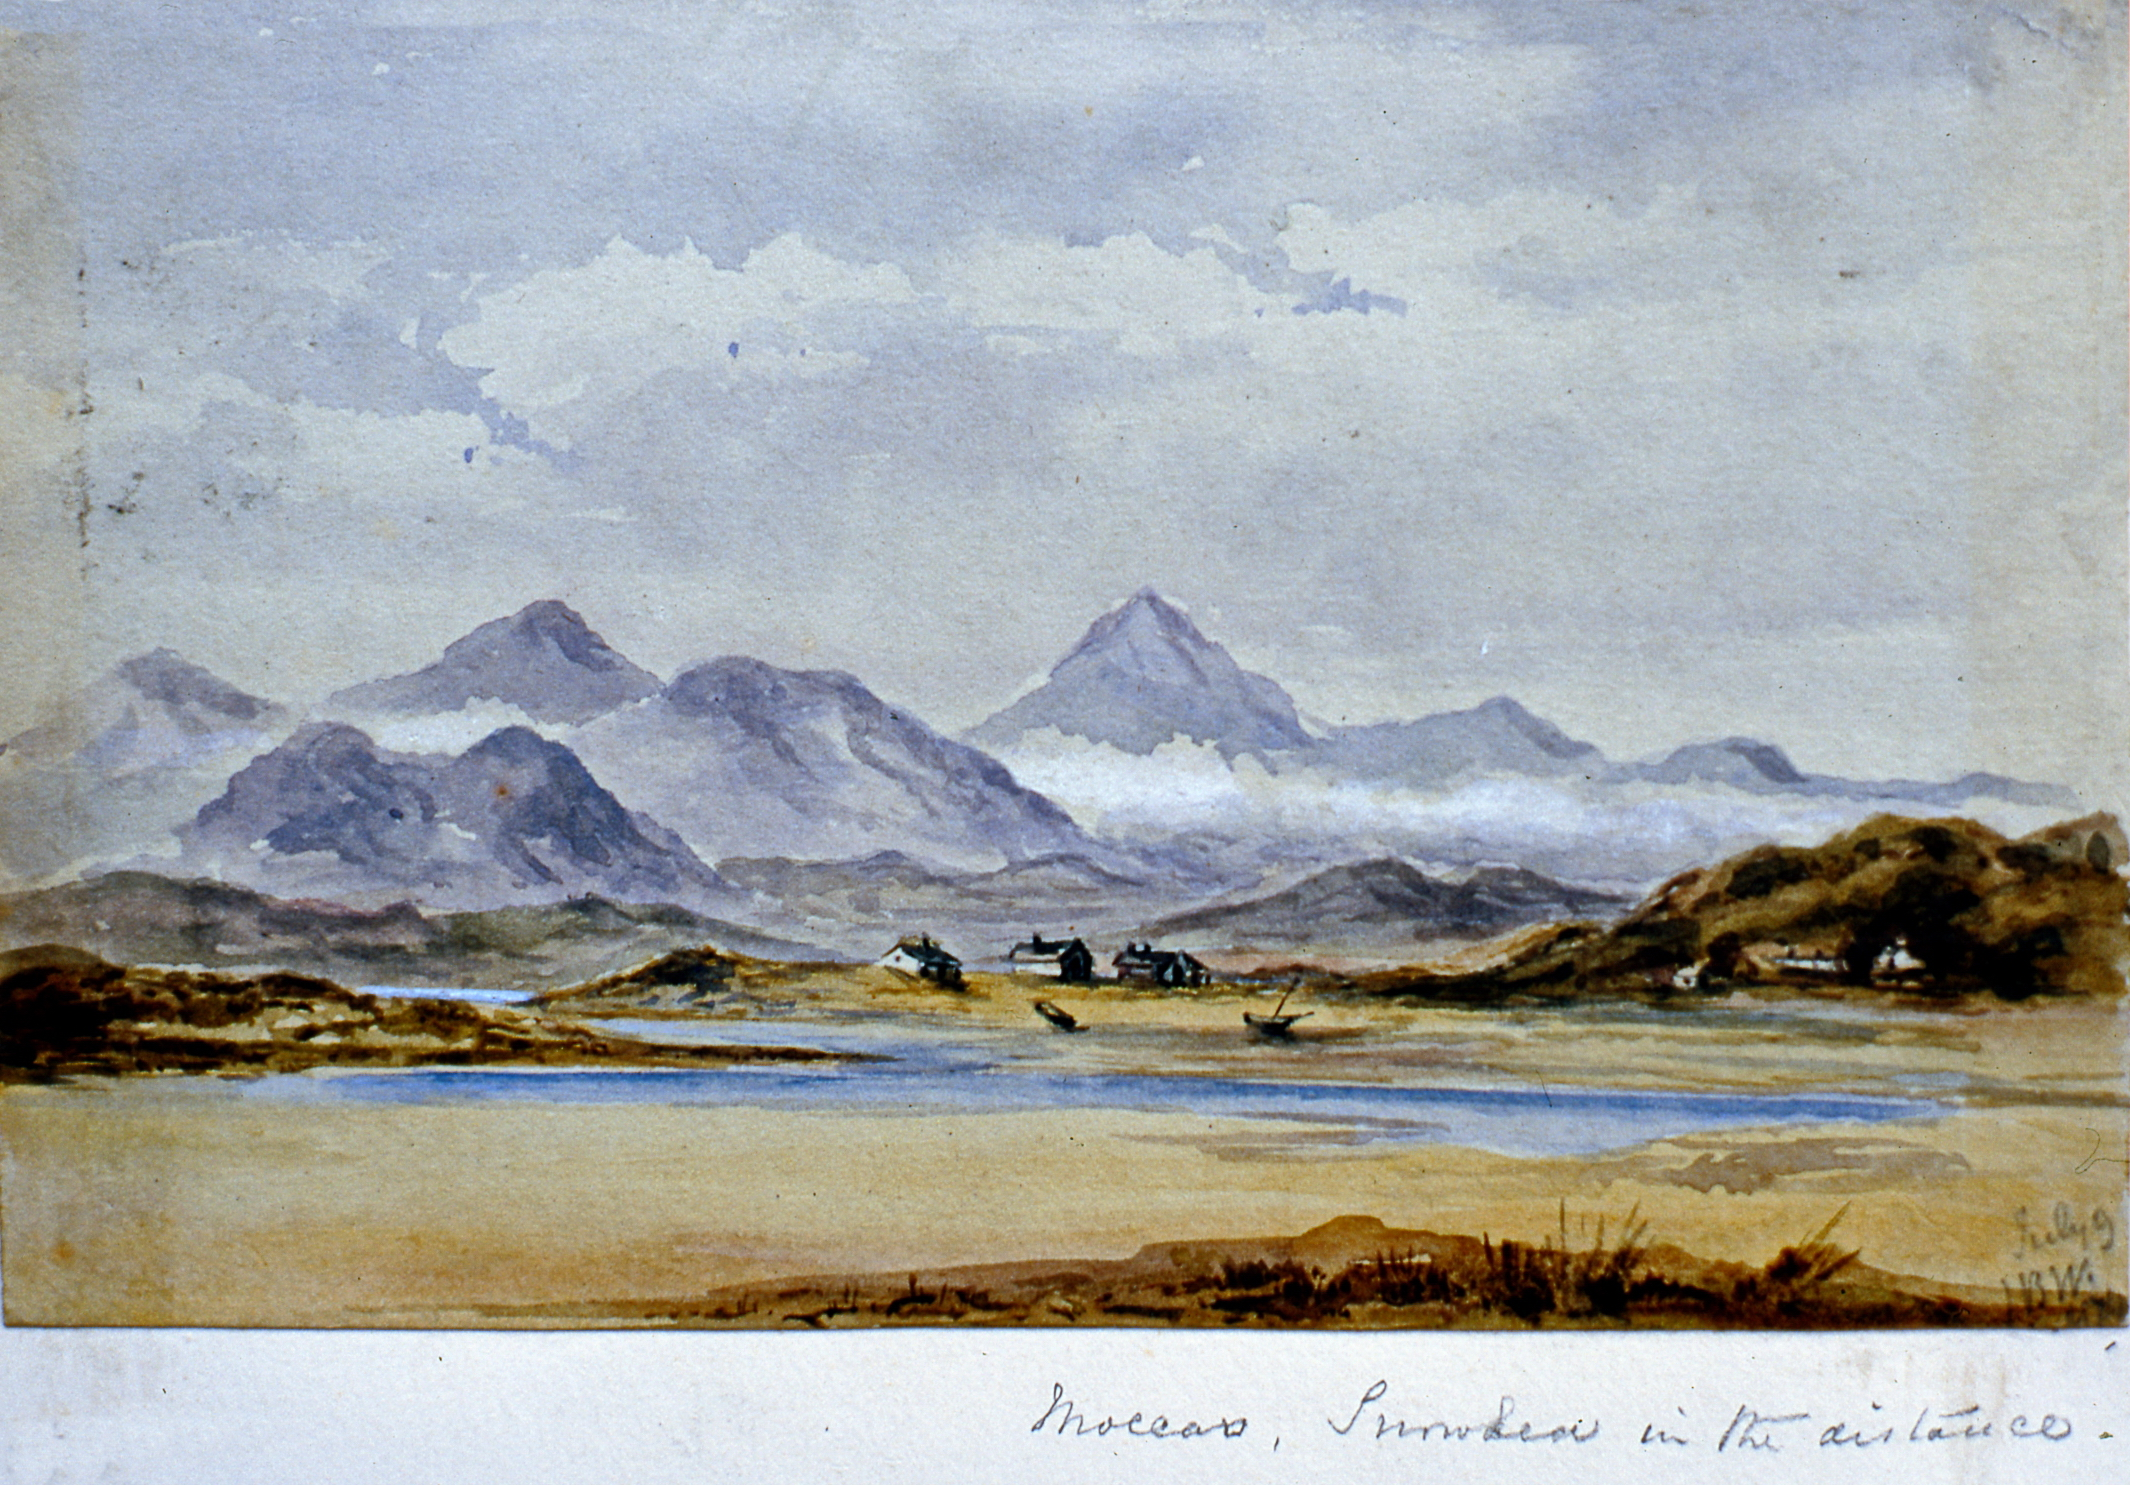 "Moccars, Smuden (?) in the distance , July 9 1874, Julia Bullock Webster, watercolour on paper, 4 3/4""  x 8"", 2003.02.43, gift of The Grist Mill at Keremeos"